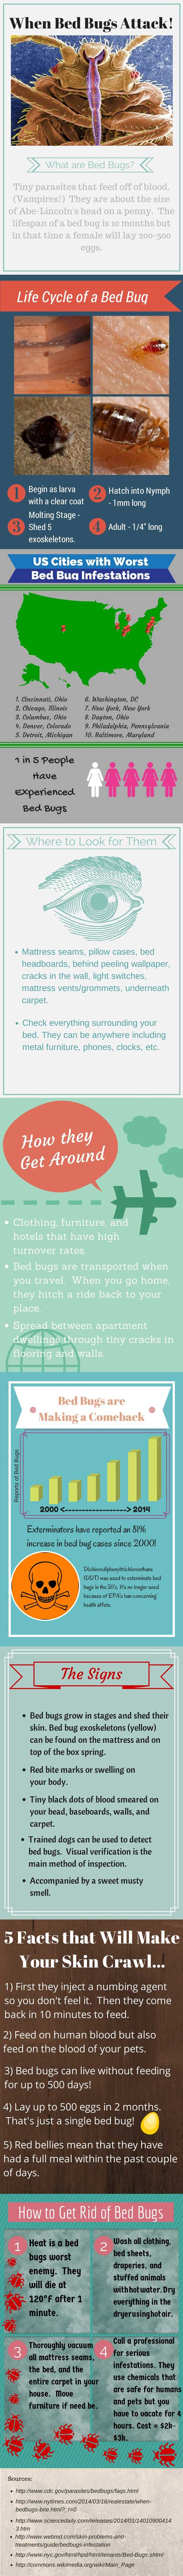 When Bed Bugs Attack! by PlatformBedsOnline.com